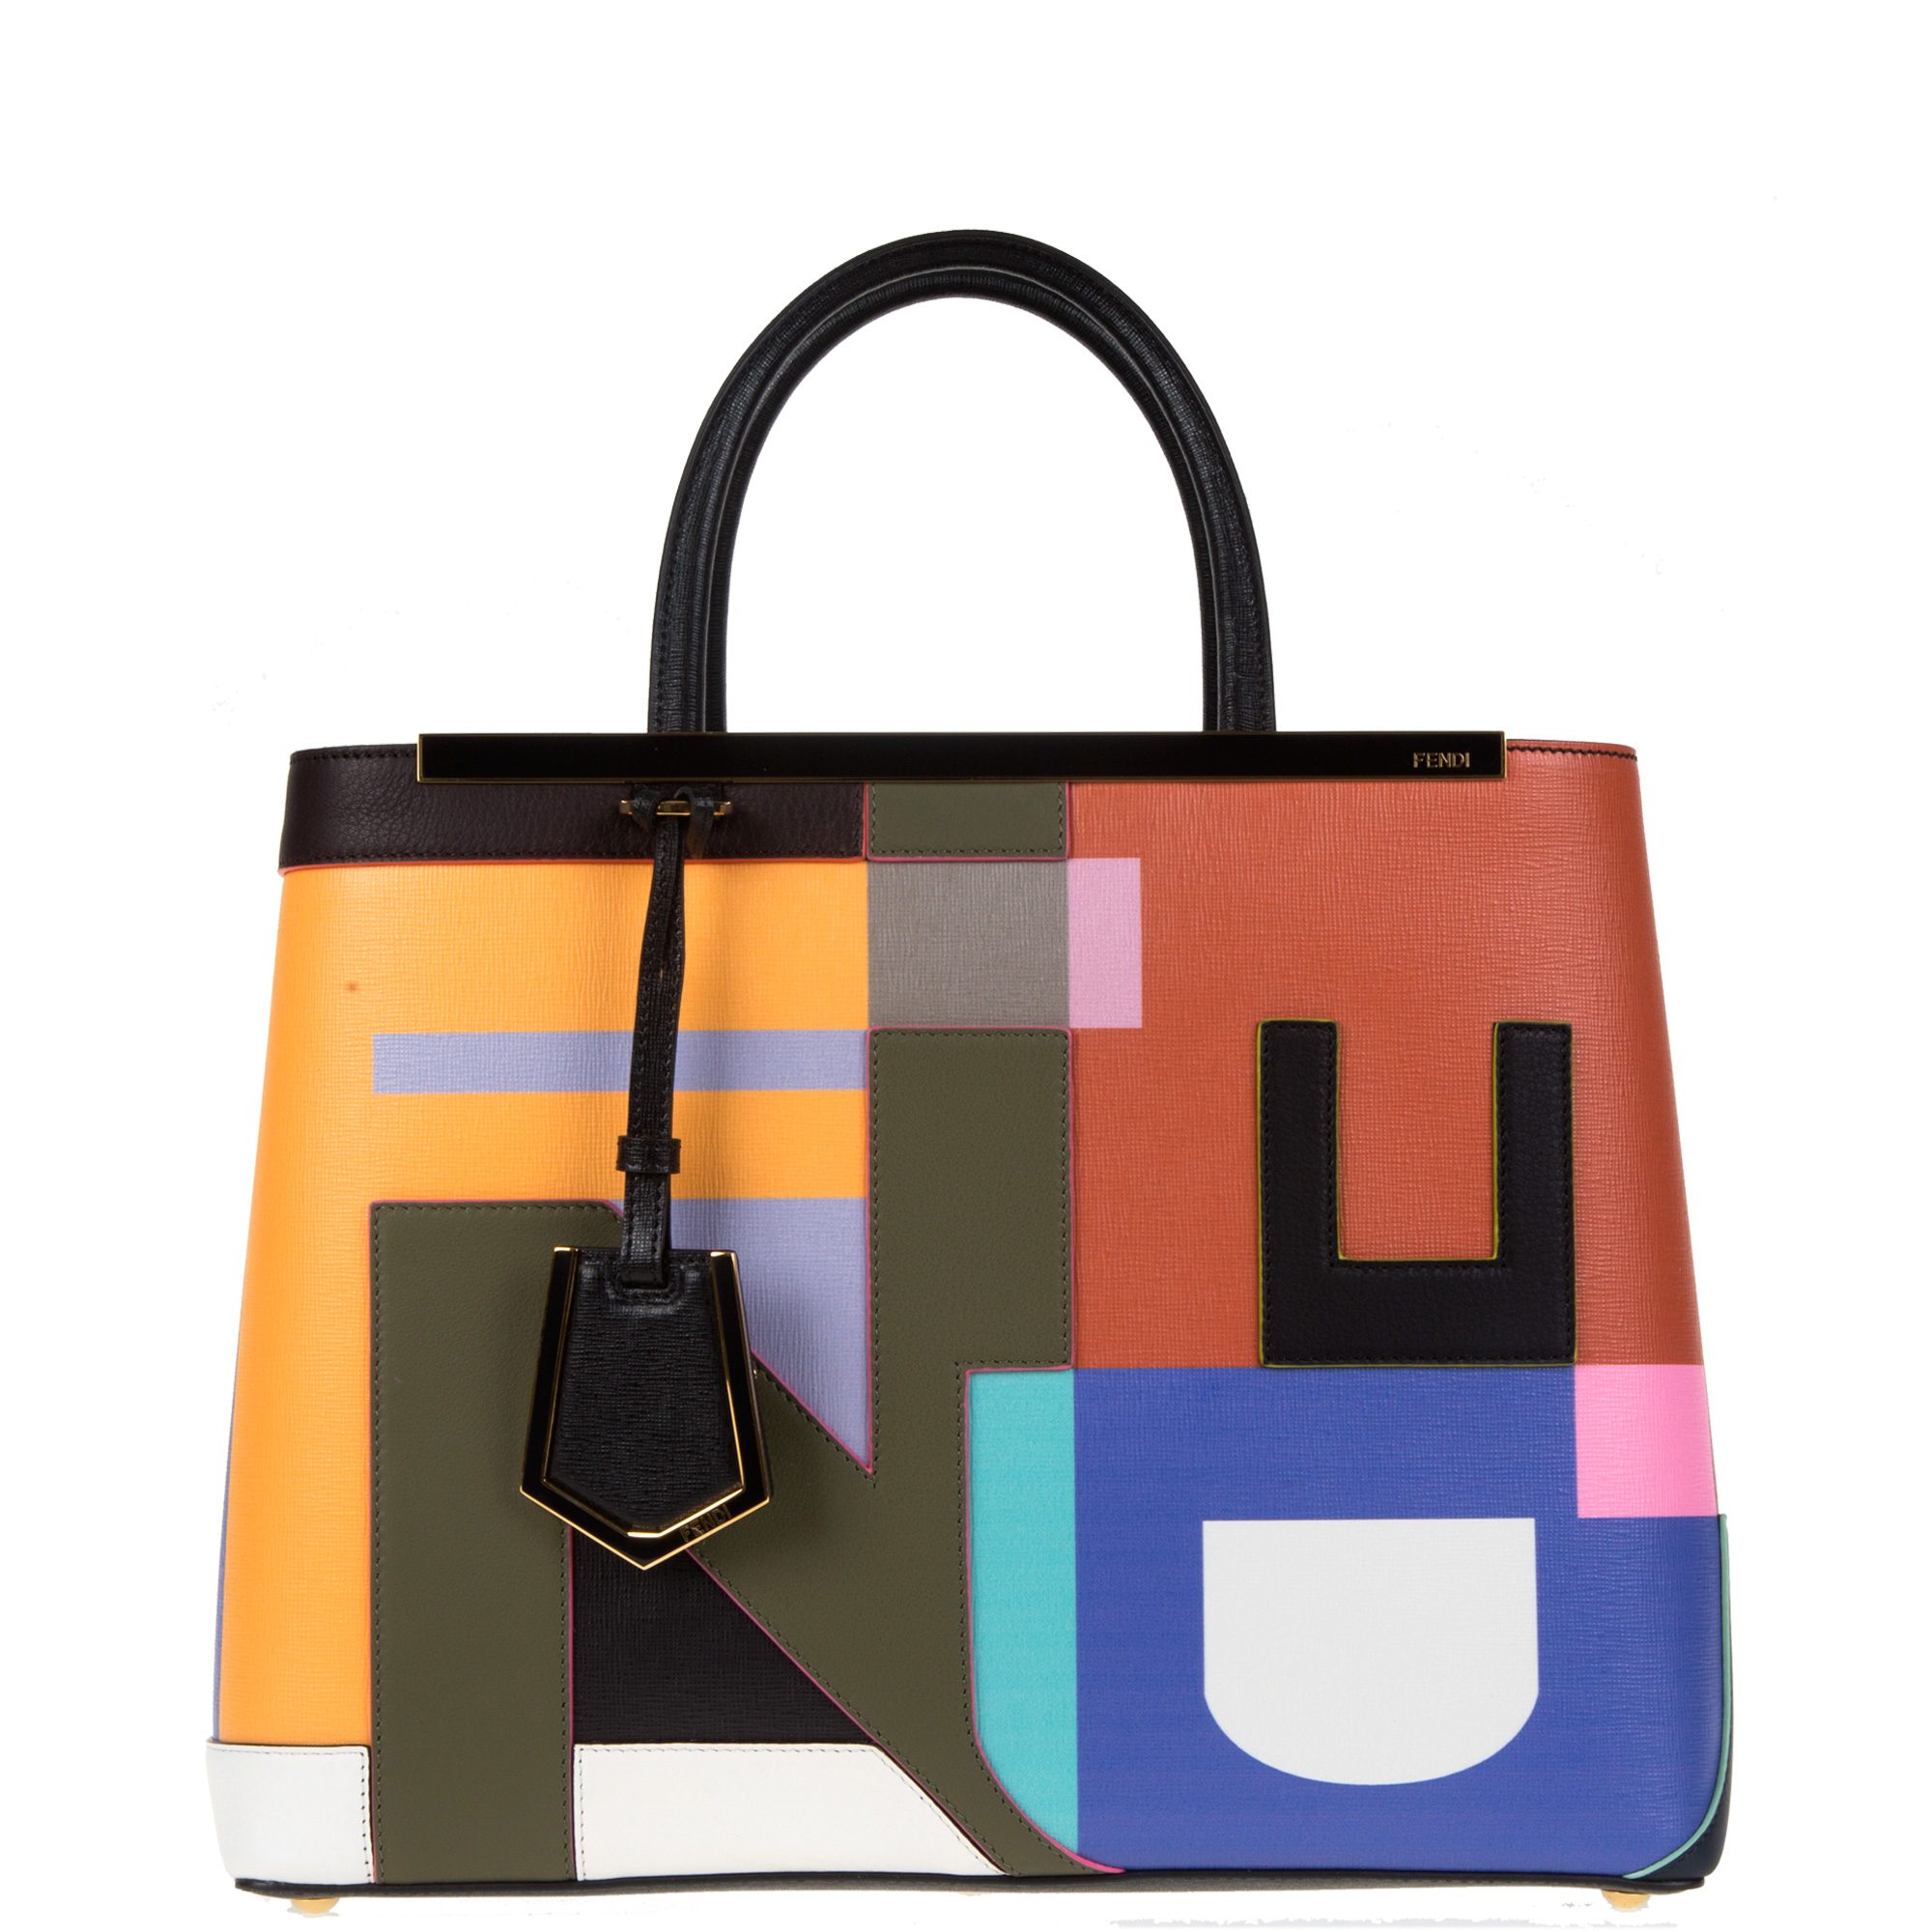 3863148c30 ... purchase fendi 2jours leather bag lyst 16aff 195da